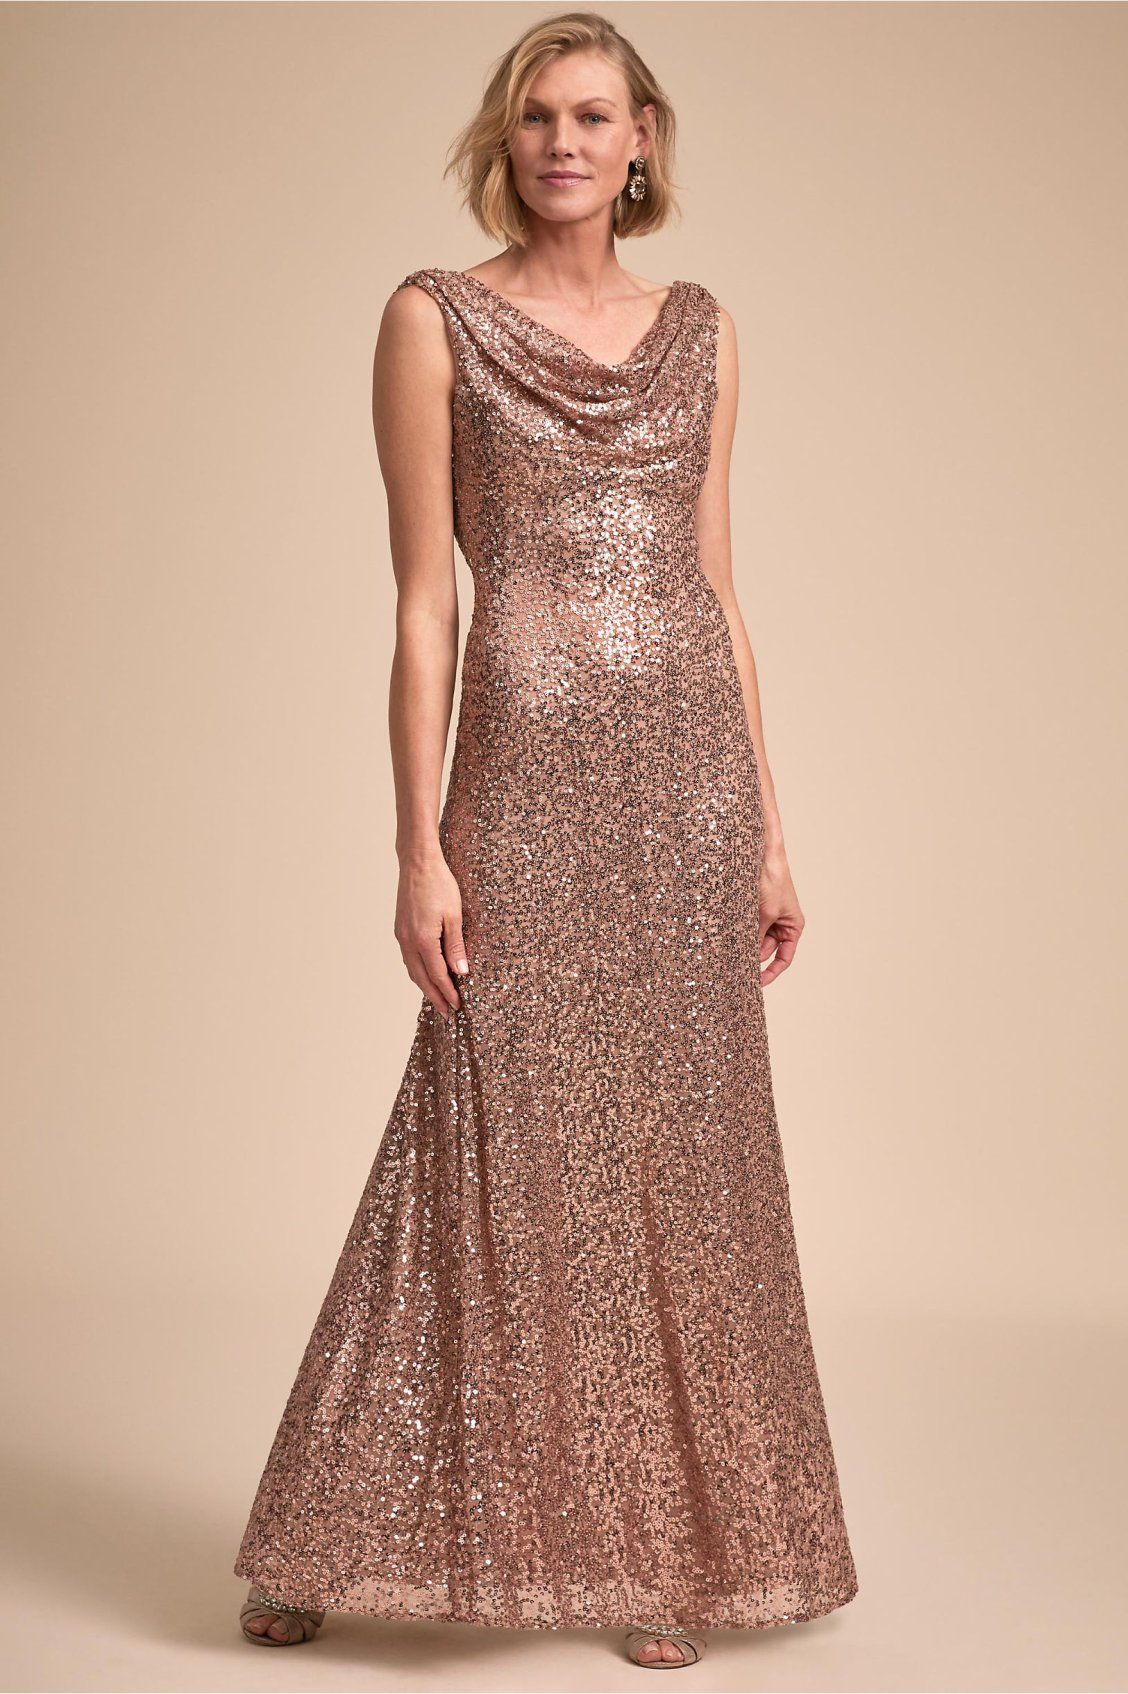 Francia Dress From Bhldn Mother Of The Bride Dresses Long Mother Of The Bride Mother Of The Bride Dresses